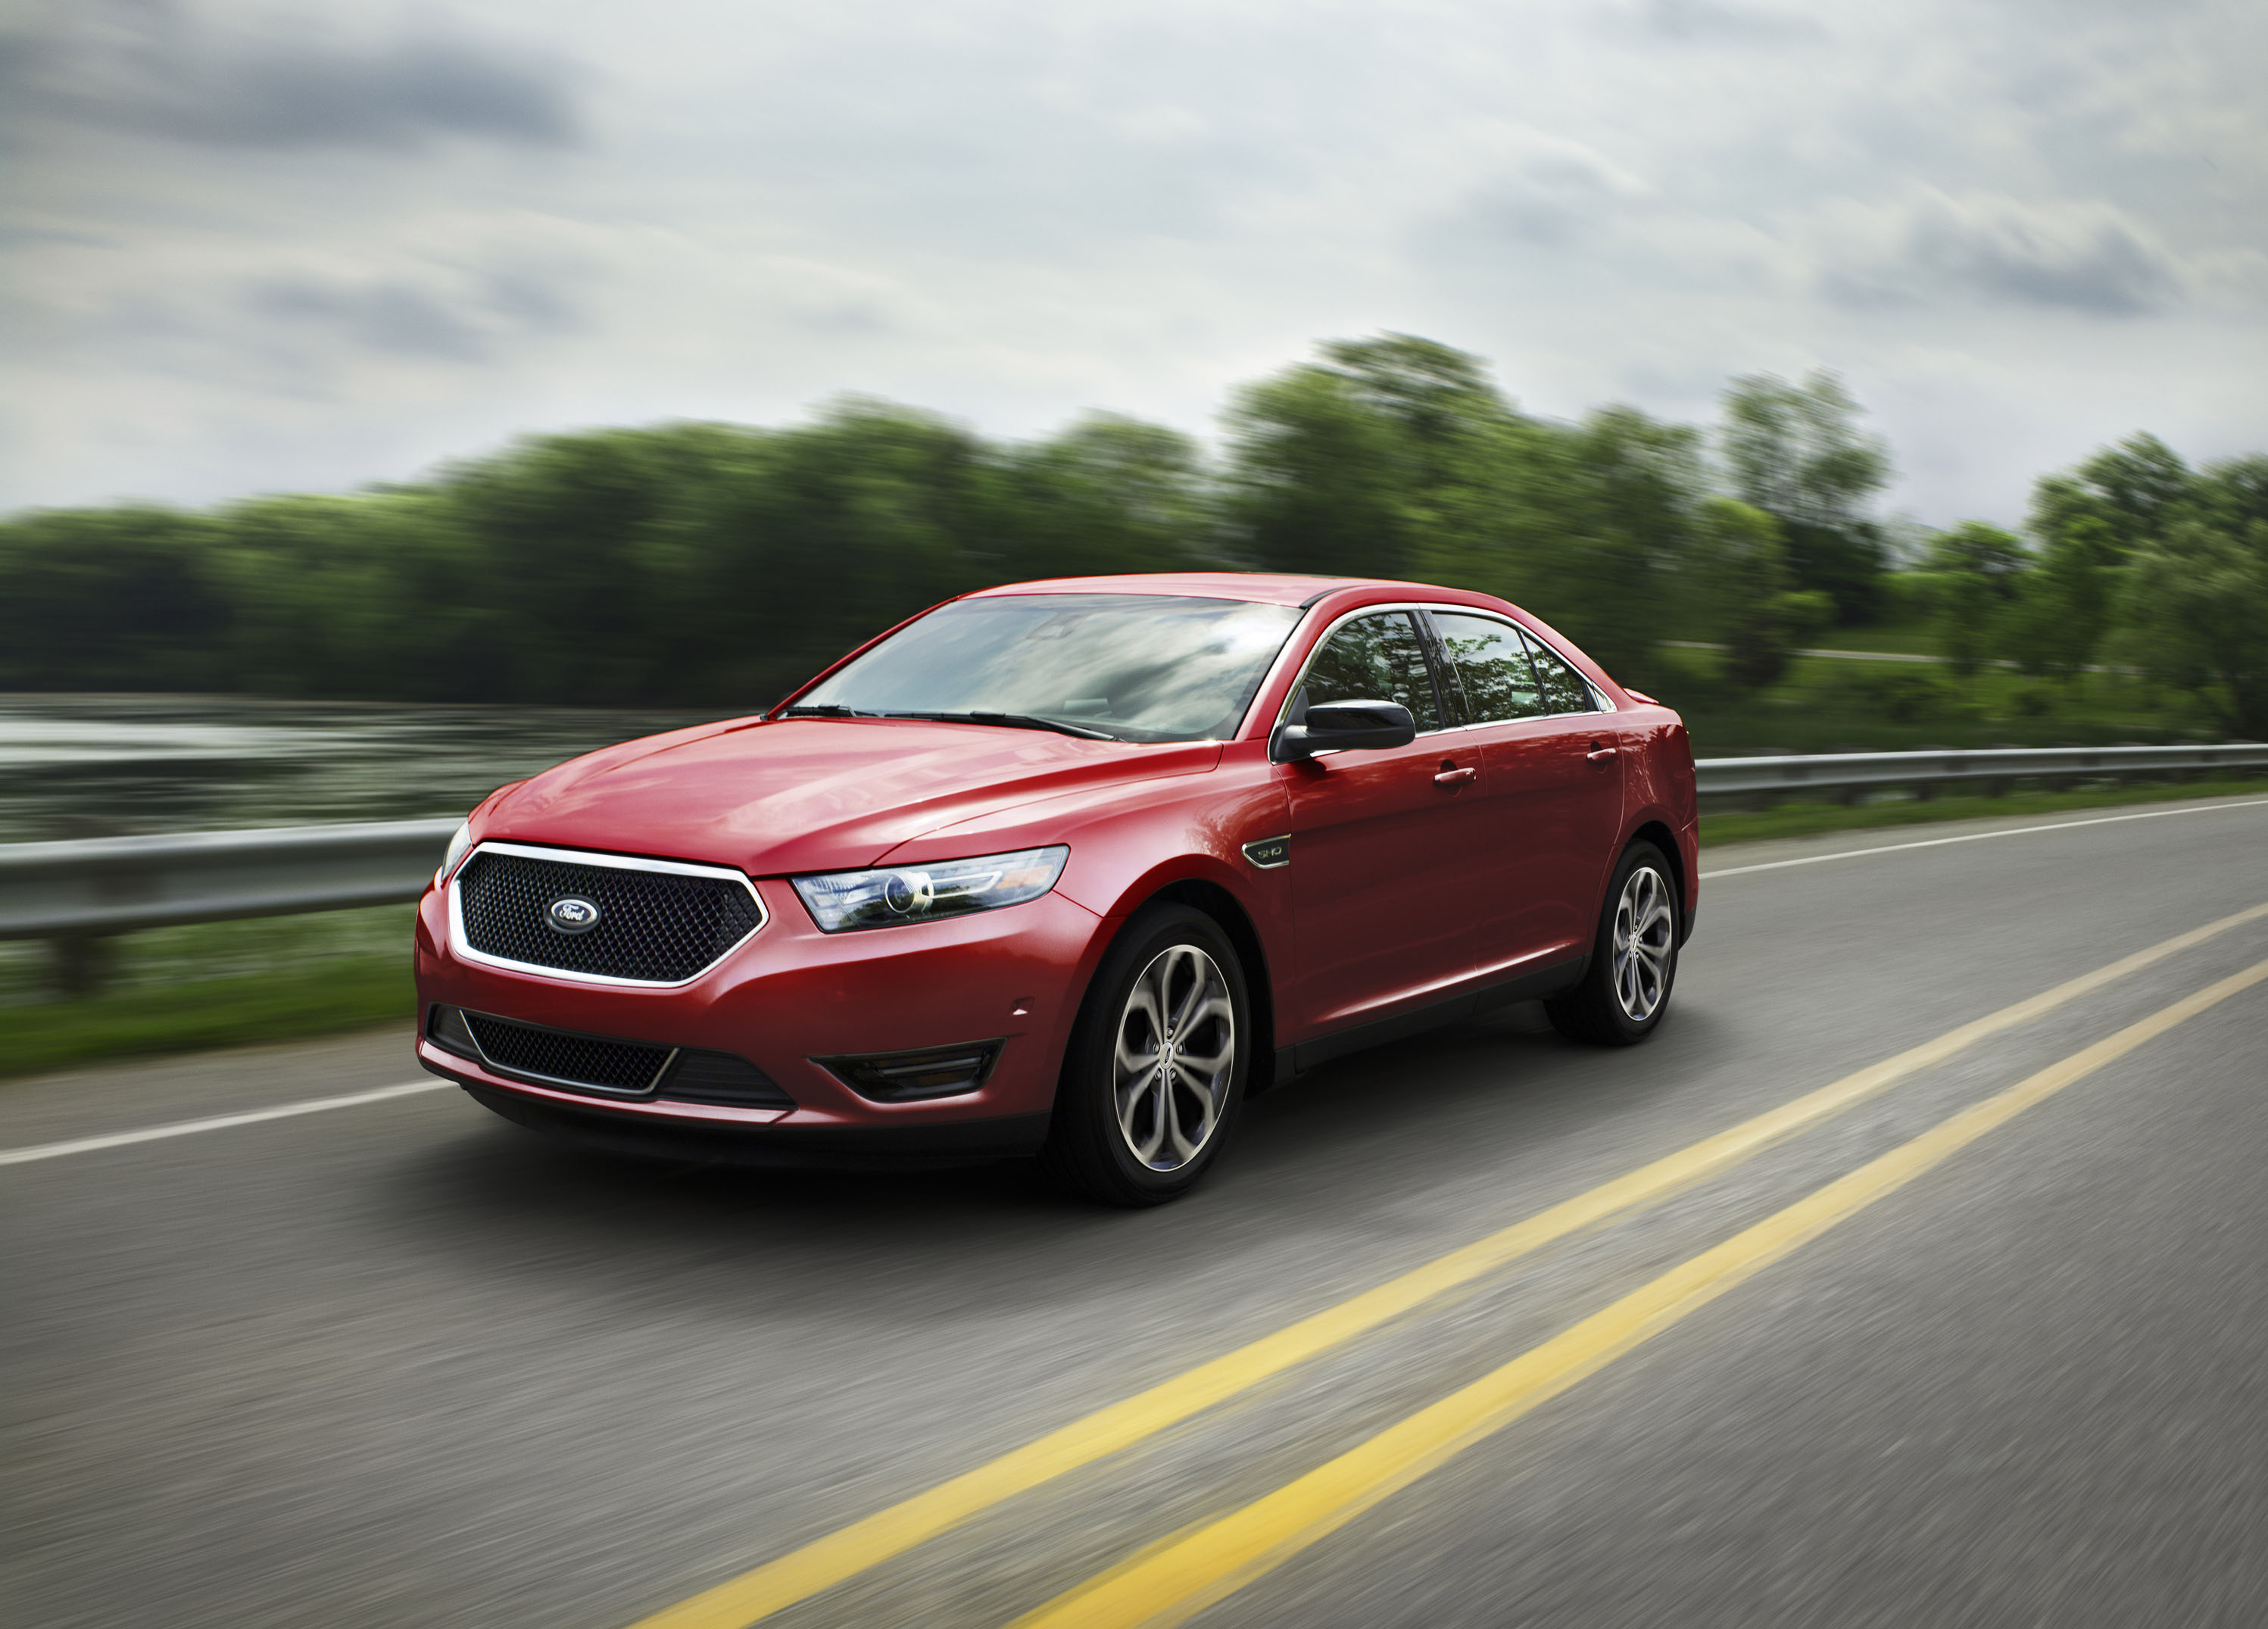 Blue Oval bye-bye: Ford axes Fiesta, Fusion, Focus, Taurus cars from future  plans